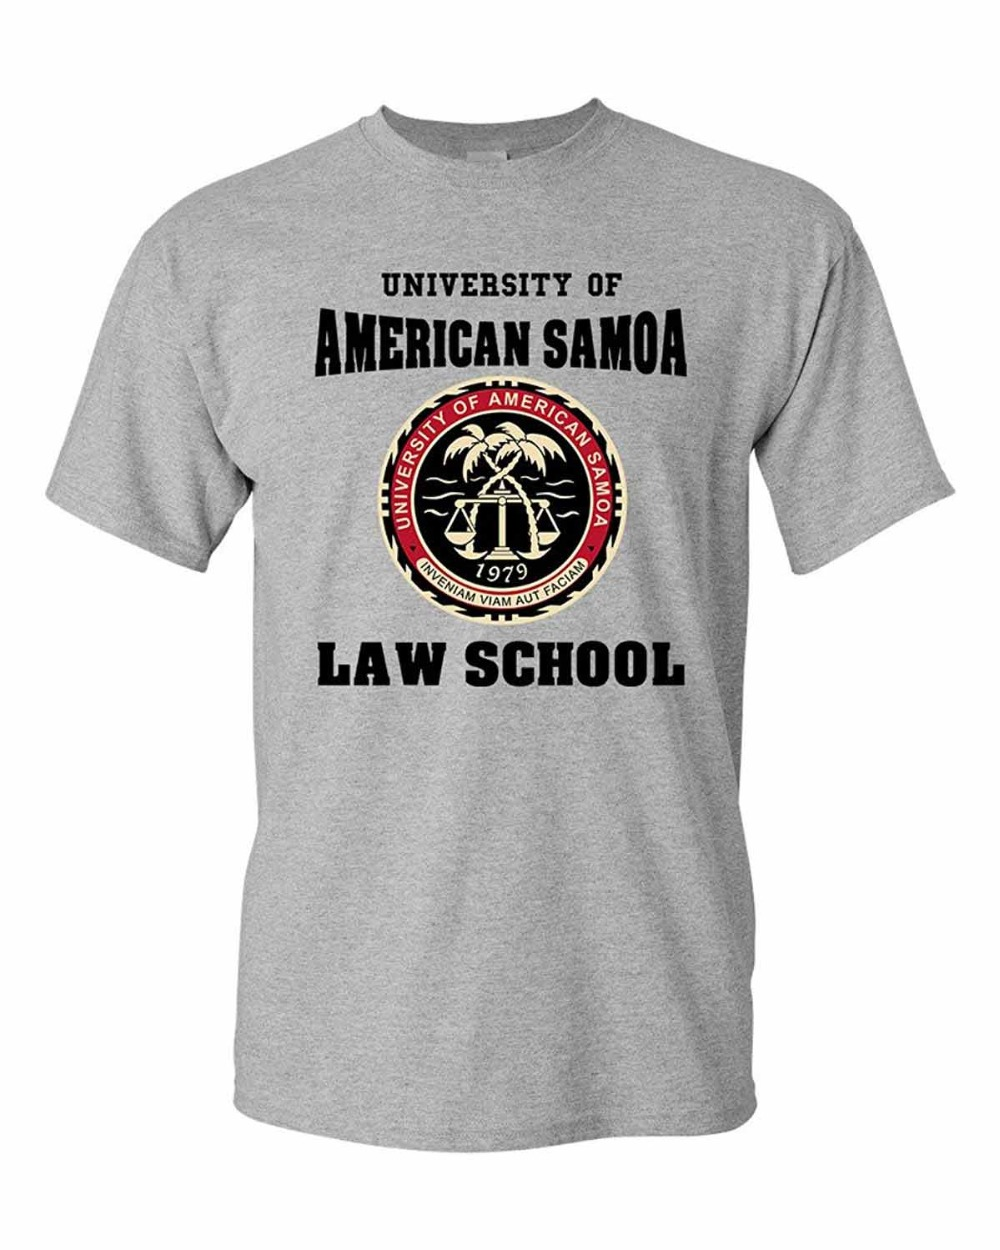 Newest 2018 Fashion Stranger Things T Shirt Men University Of American Samoa Law School Dt Adult T Shirt Tee 011614 image